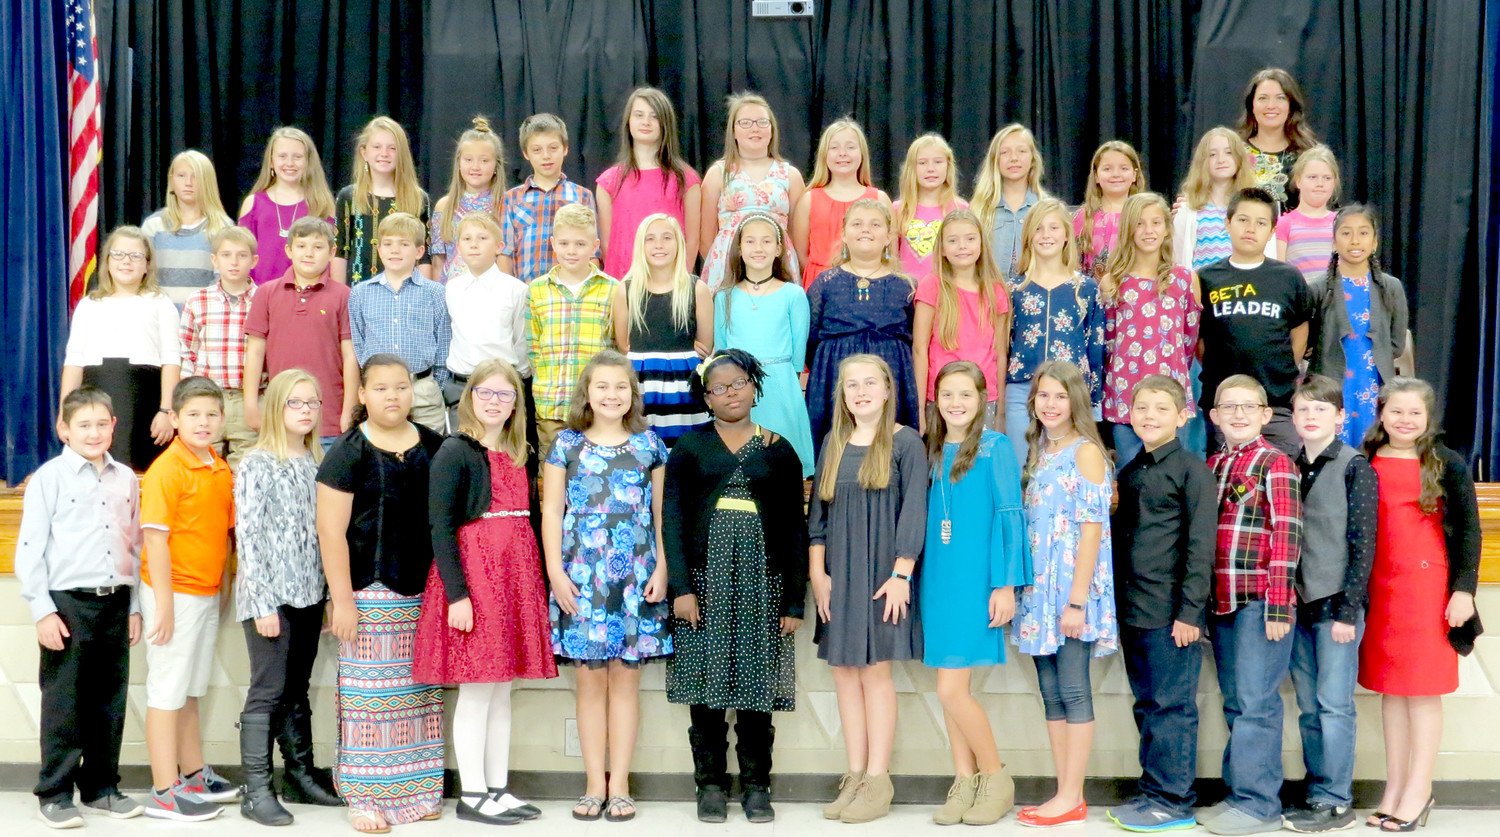 THE JUNIOR BETA CLUB at Black Fox Elementary School has inducted 41 members this school year. In the first row, from left, are Tucker Womack, Ethan Malone, Emily Vines, Laisia Novene, Mikayla Mowery, Emma McMahan, Brooklyn Hewitt, Anna Claire Gibson, Alissa Cross, Brooke Bowman, Brayden Hamilton, Ethan Lynn, Carter Hicks and Abigail Ingram. Second row: Sayde Blaylock, Jake Rockholt, Riley Frazier, Corbin Pierce, Pavel Kyslytsya, Caymon Cooley, Natasha Vaske, MaKenna Cox, Piper Reynolds, Eva Lewis, Keelyn Eslinger, Madelyn Eslinger, Sebastion Arellano and Ashley Ortiz. Third row: Kiley Slader, Halle Young, Macy King, Hannah Pearson, Caleb Tuinstra, Sarah Jordan, Morgan Armstrong, Brooklyn Humberd, Angelina Hitson, Gracie Parker, Kyanna Leach, Maggie Skelton, Elizabeth Rapp and sponsor Amber Winters.